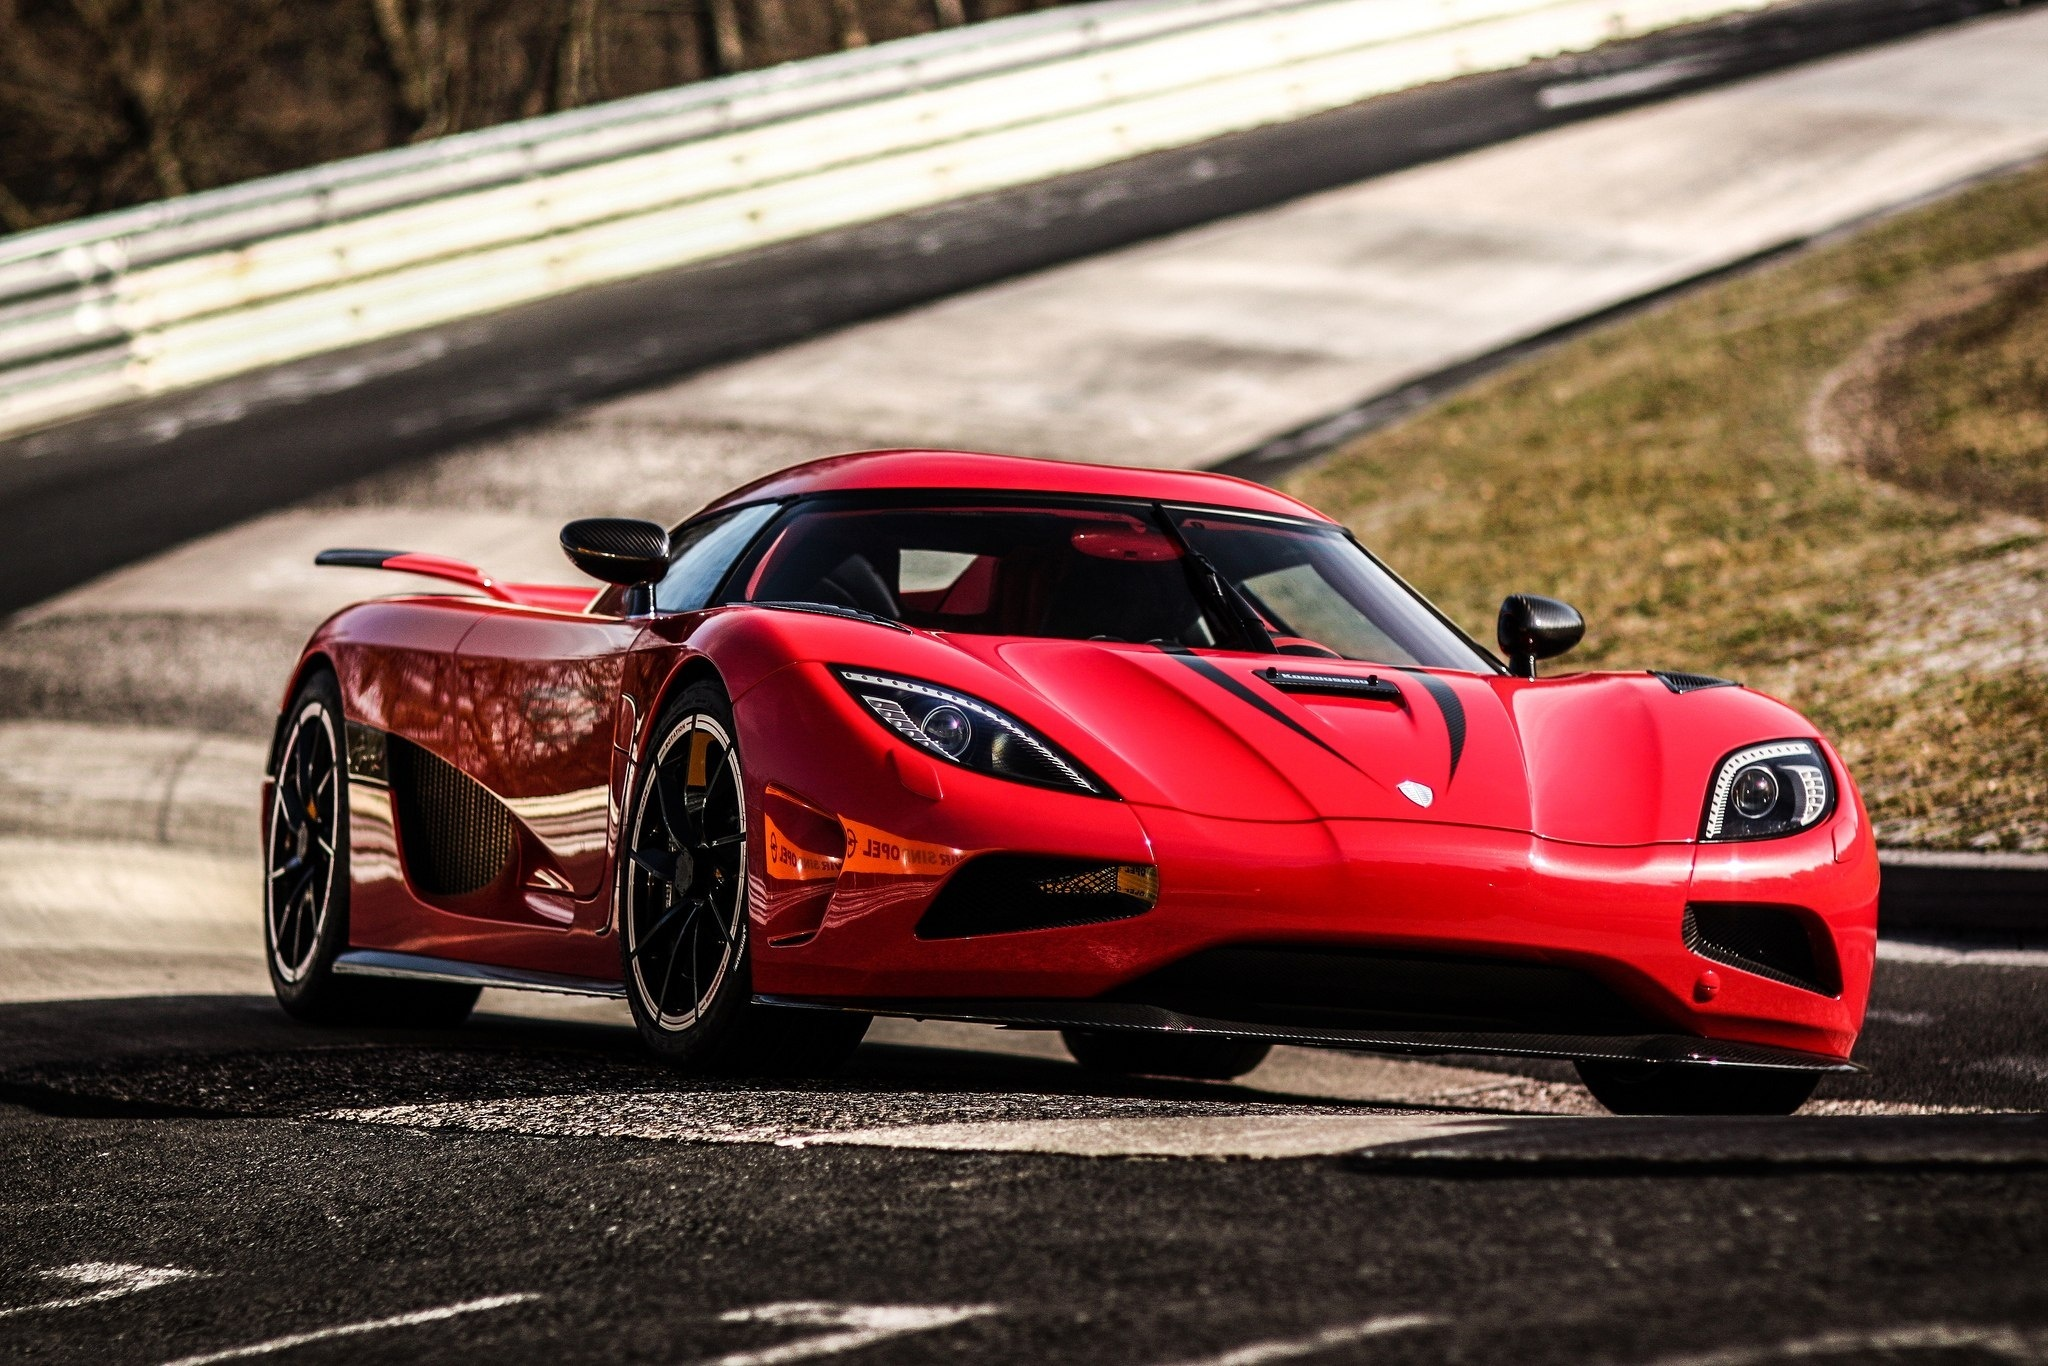 20 Koenigsegg Agera HD Wallpapers Backgrounds 2048x1366